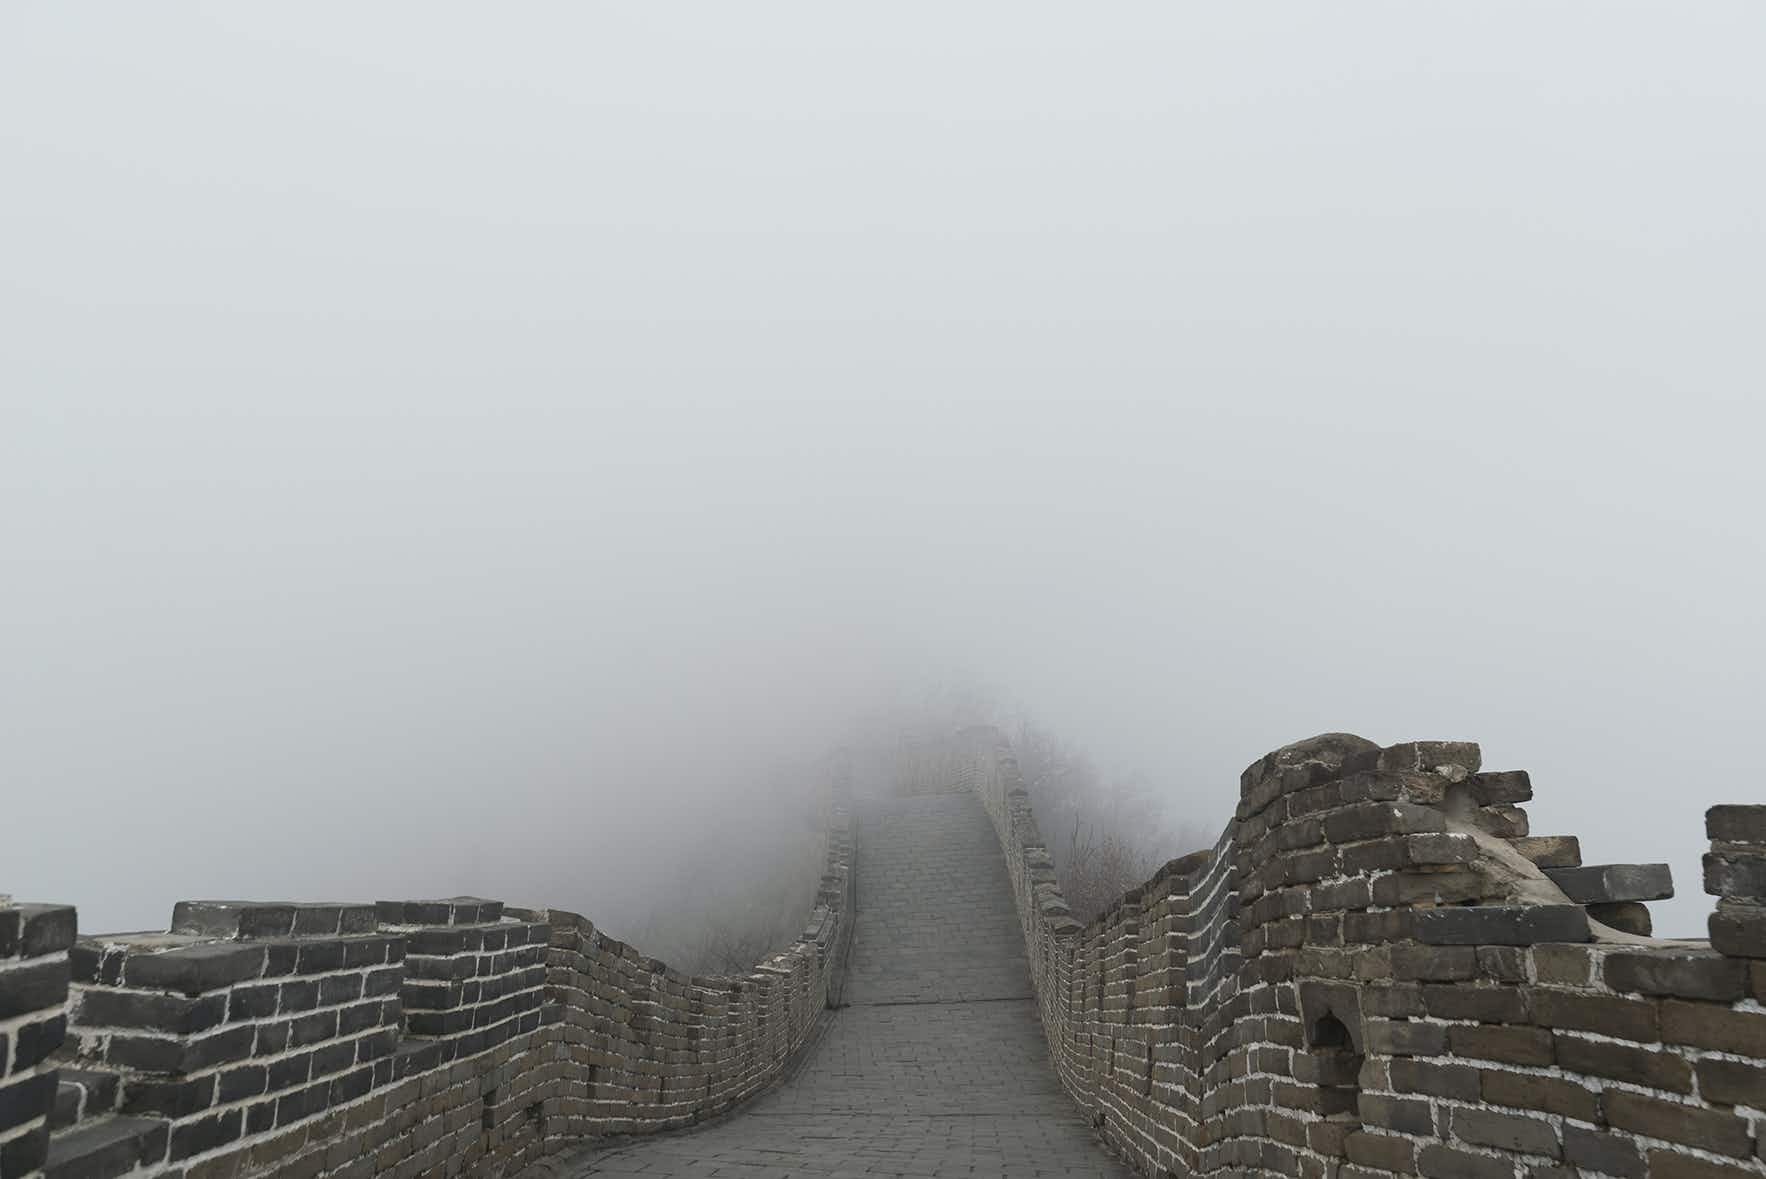 See the Great Wall of China shrouded in a haunting mist